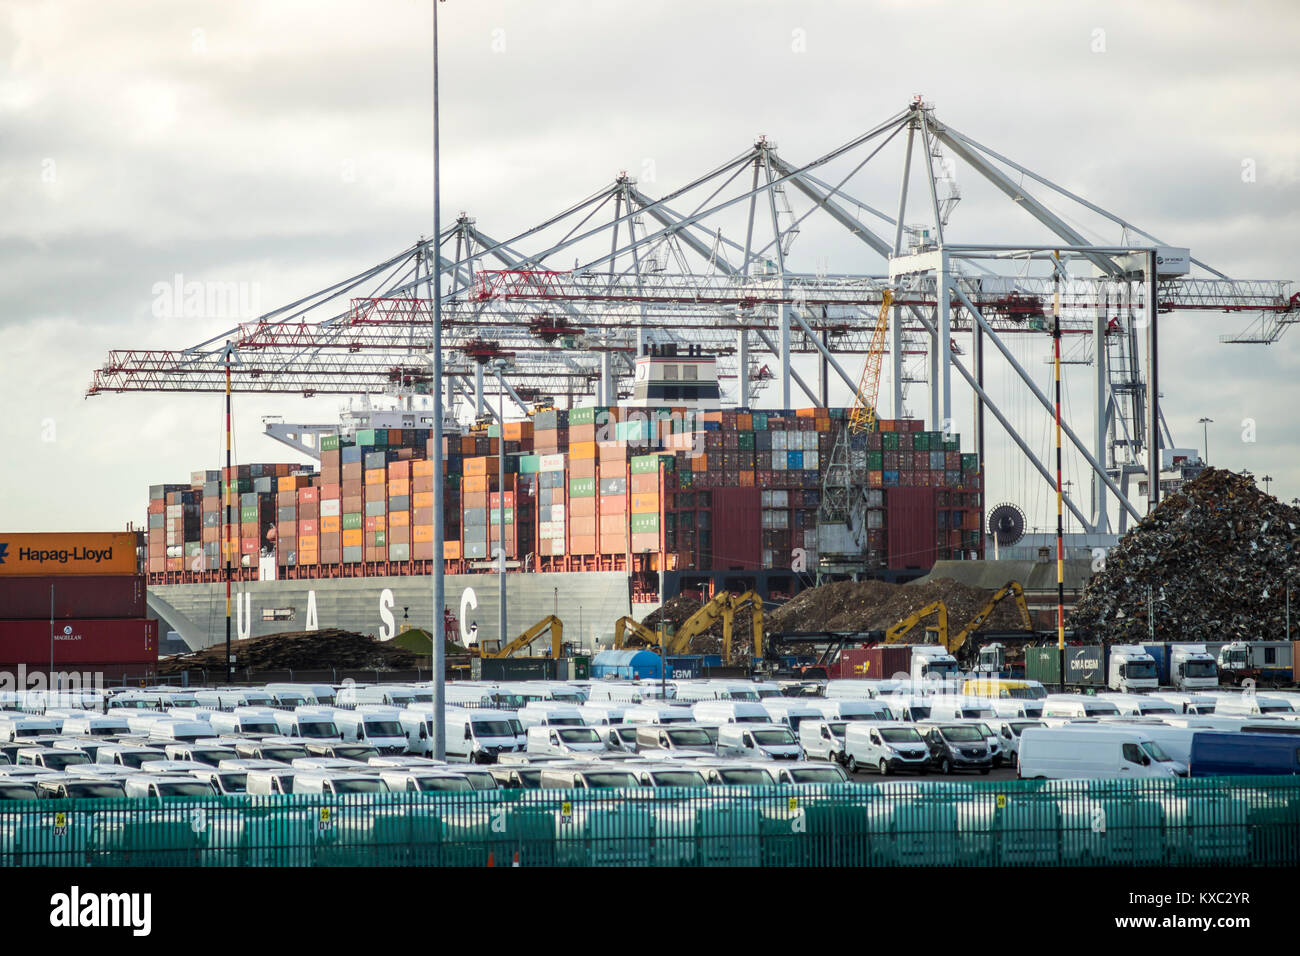 Container/ cargo ship being loaded/ unloaded in the Port of Southampton December 2017, England, UK Stock Photo